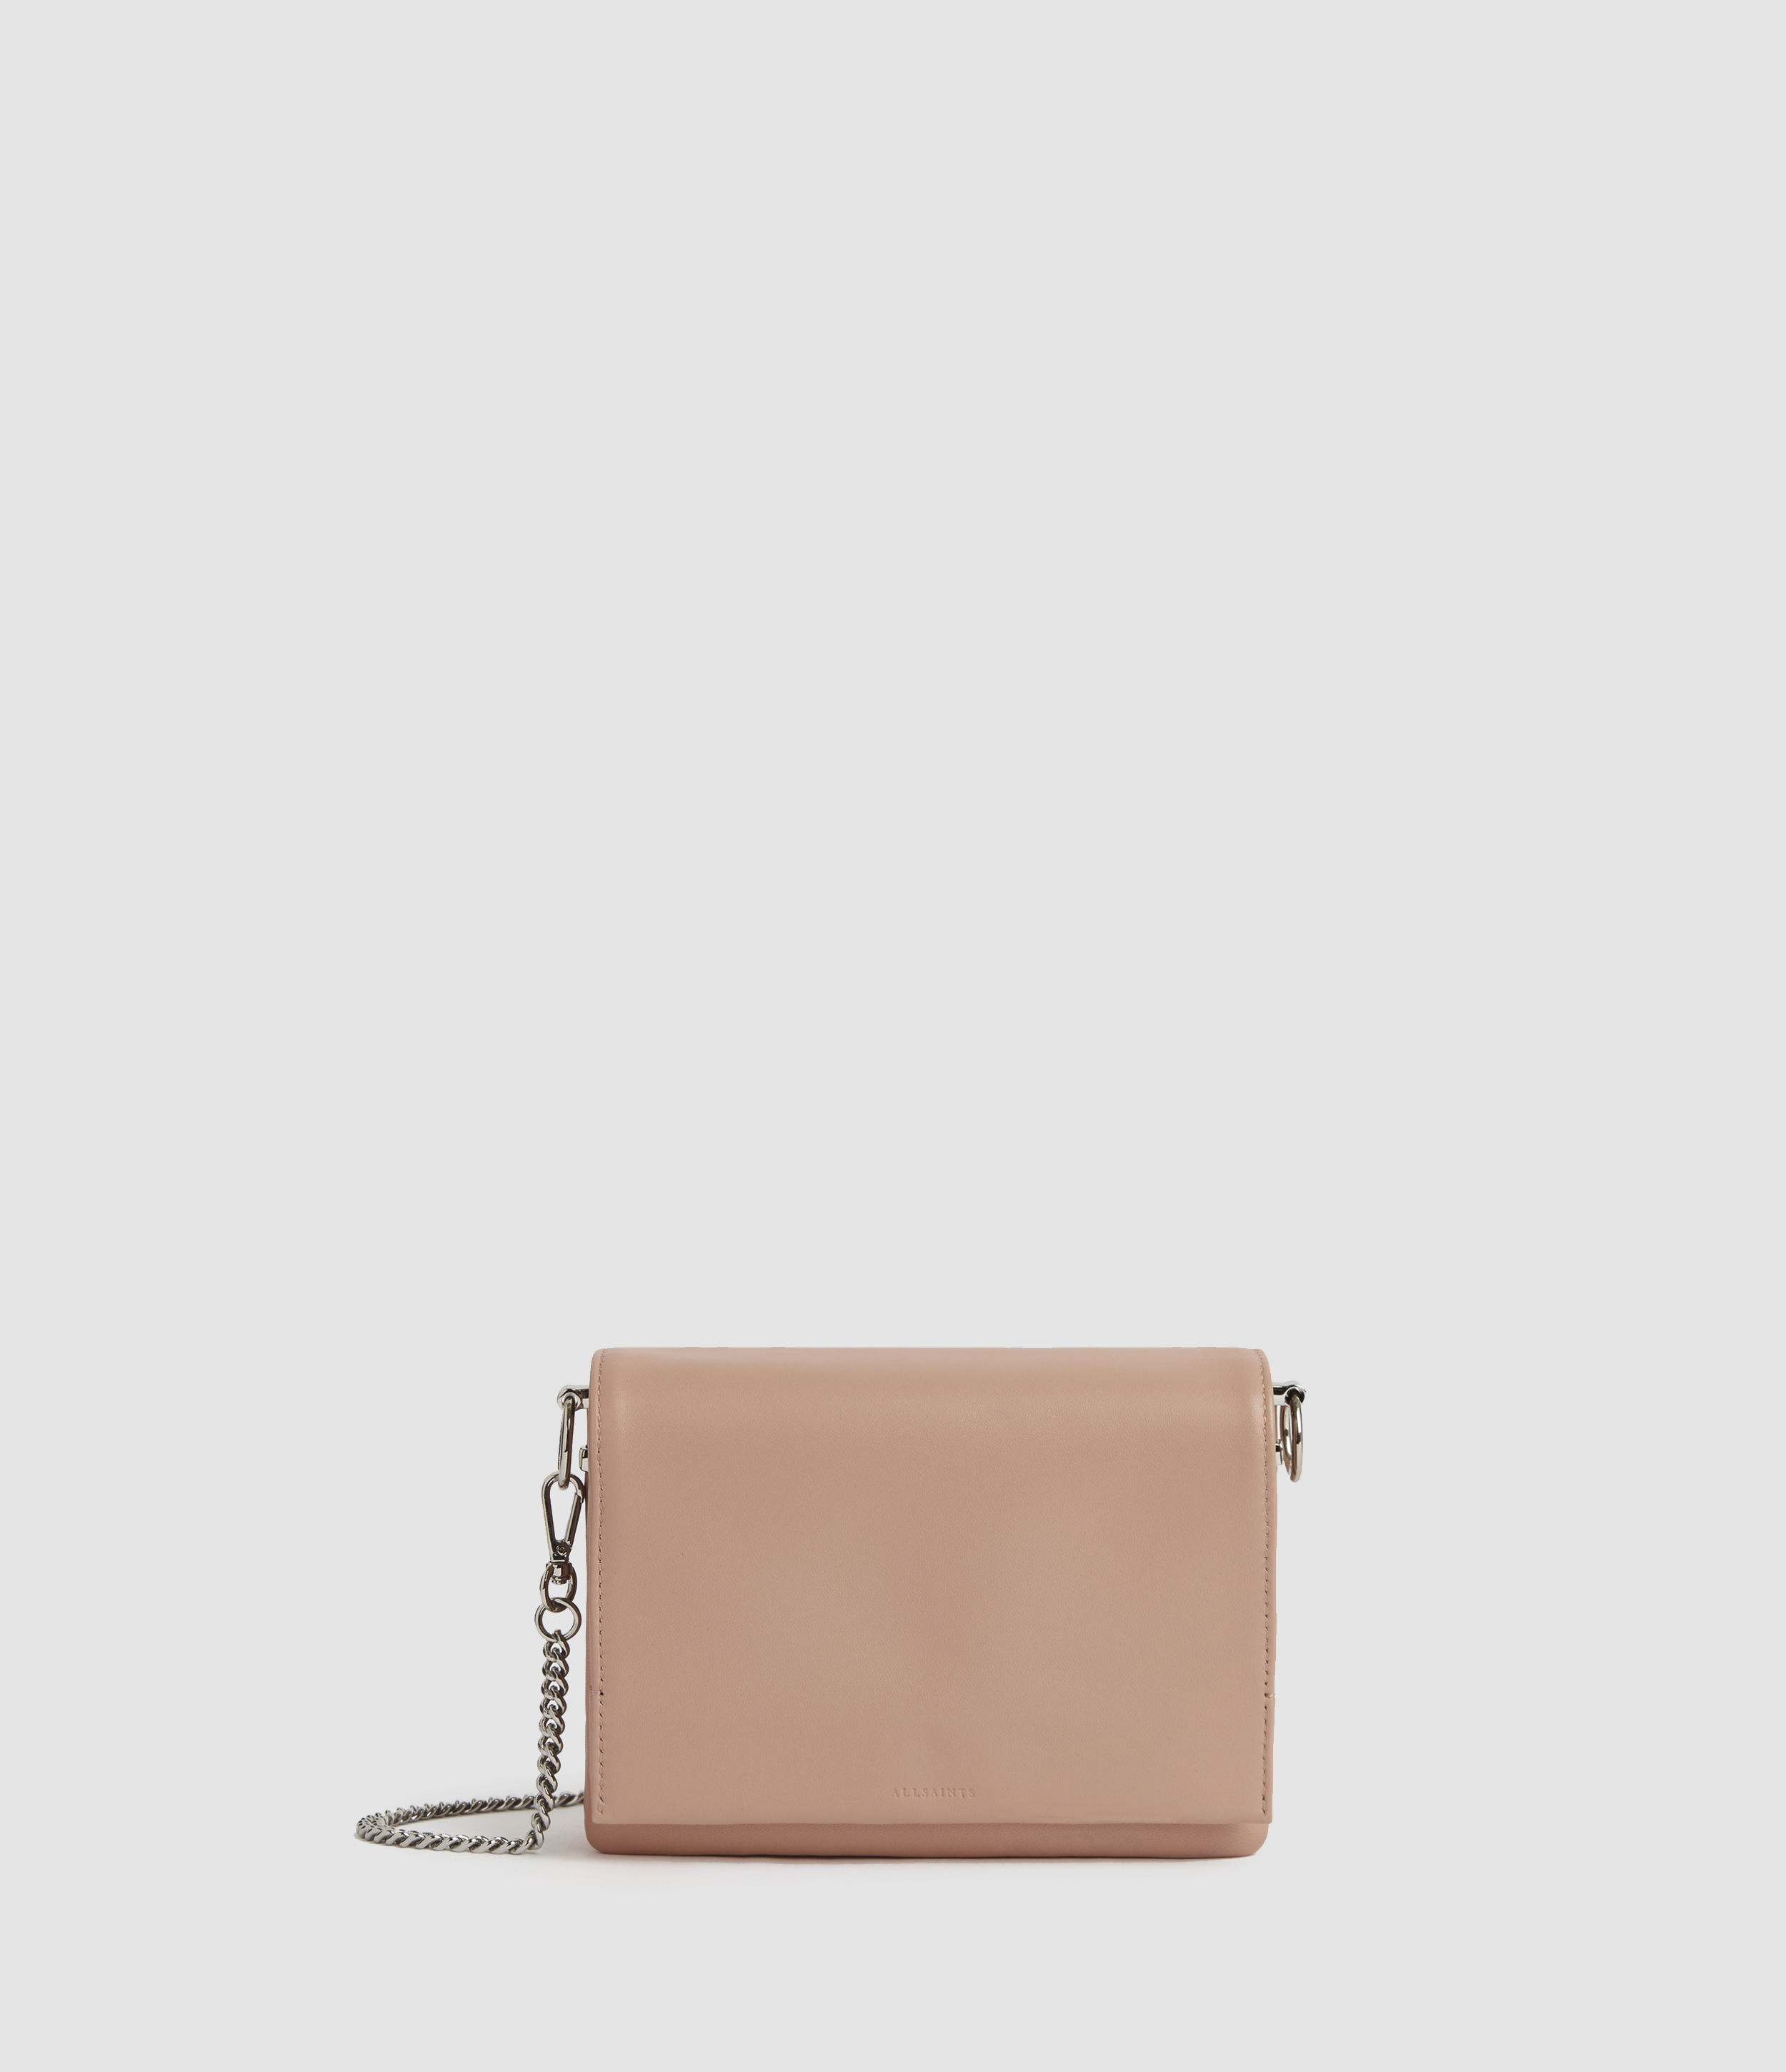 AllSaints Brune Leather Shoulder Bag